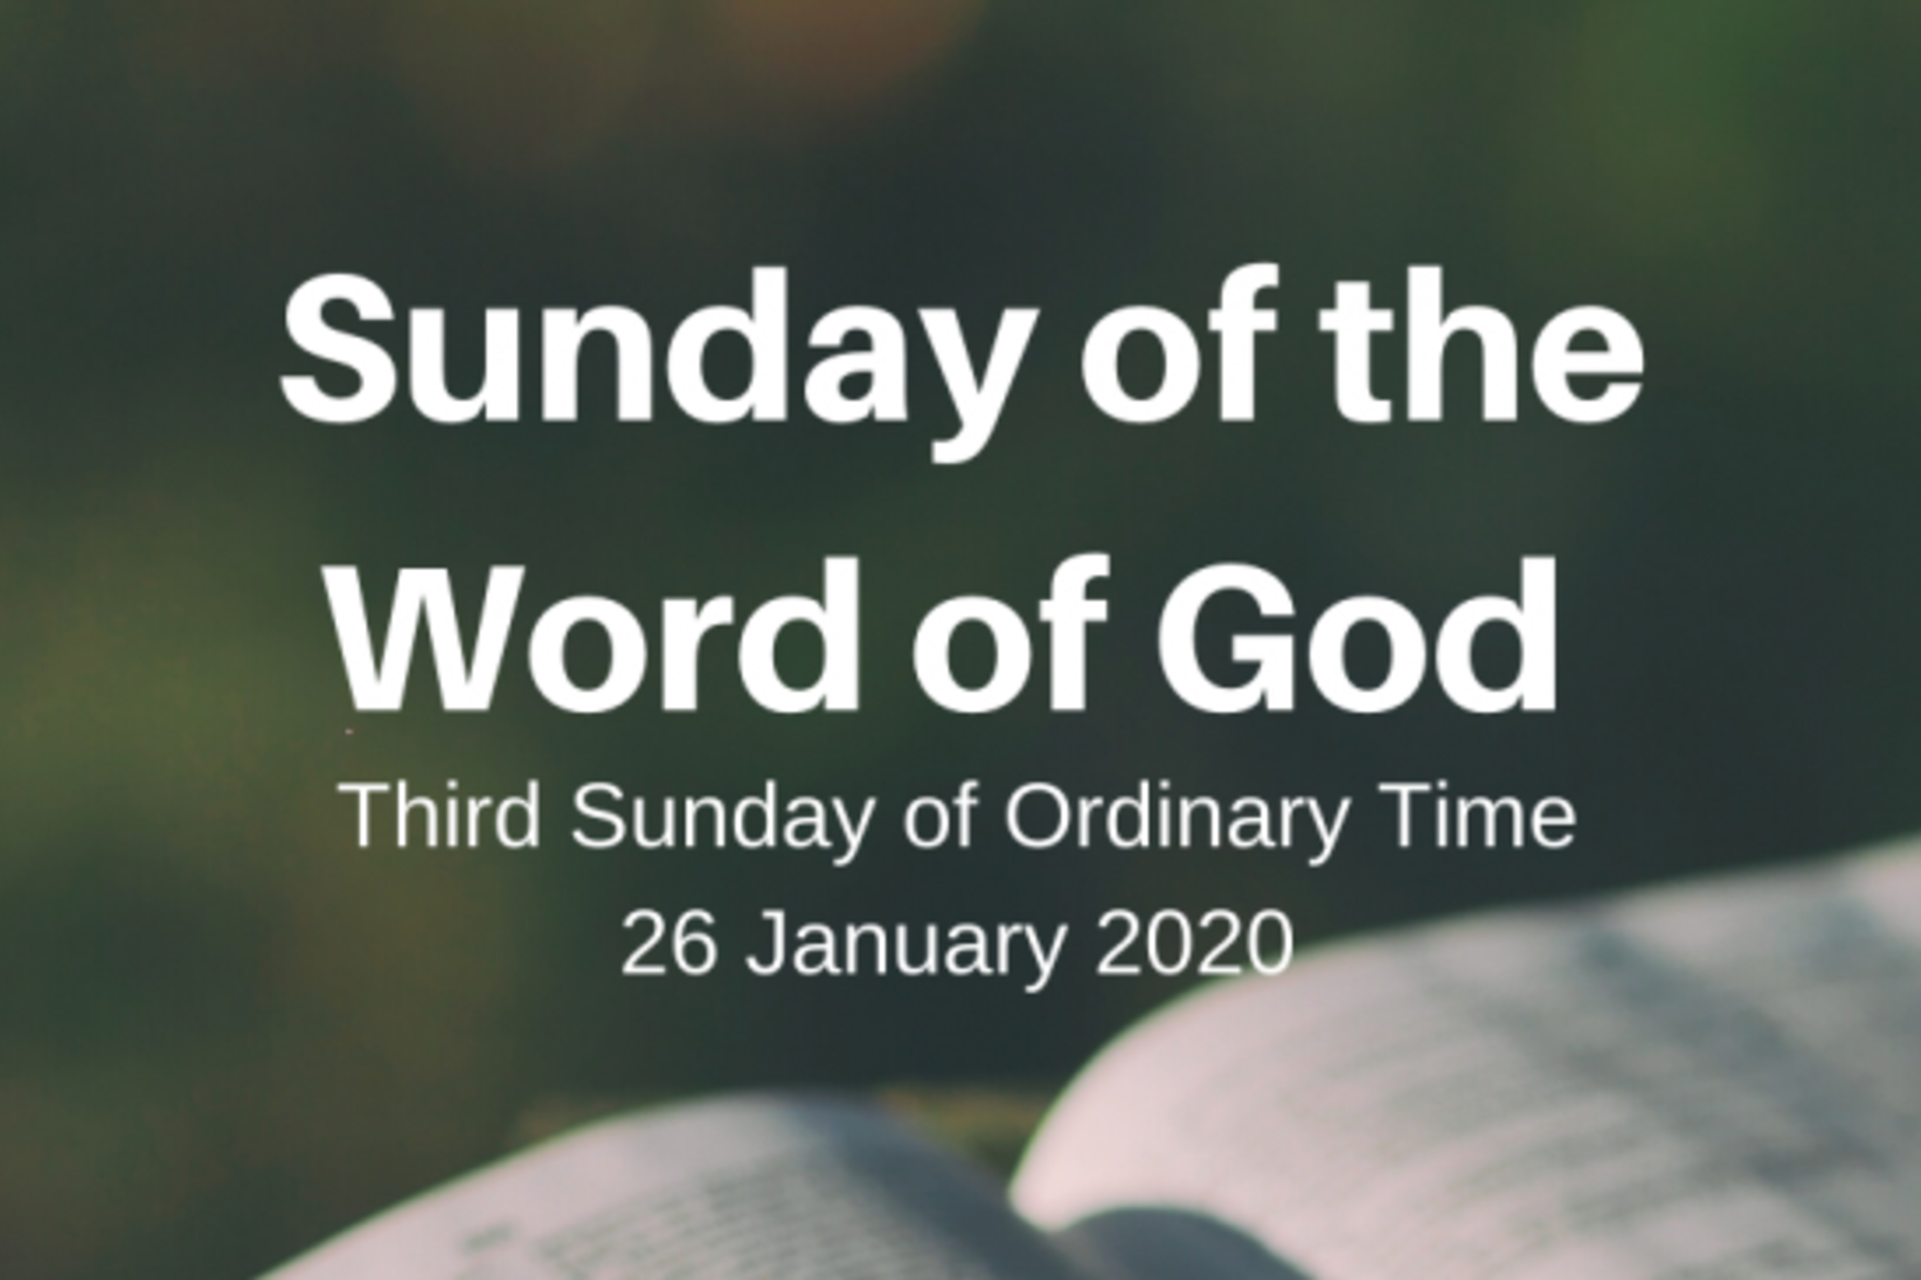 Resources for 'Sunday of the Word of God'